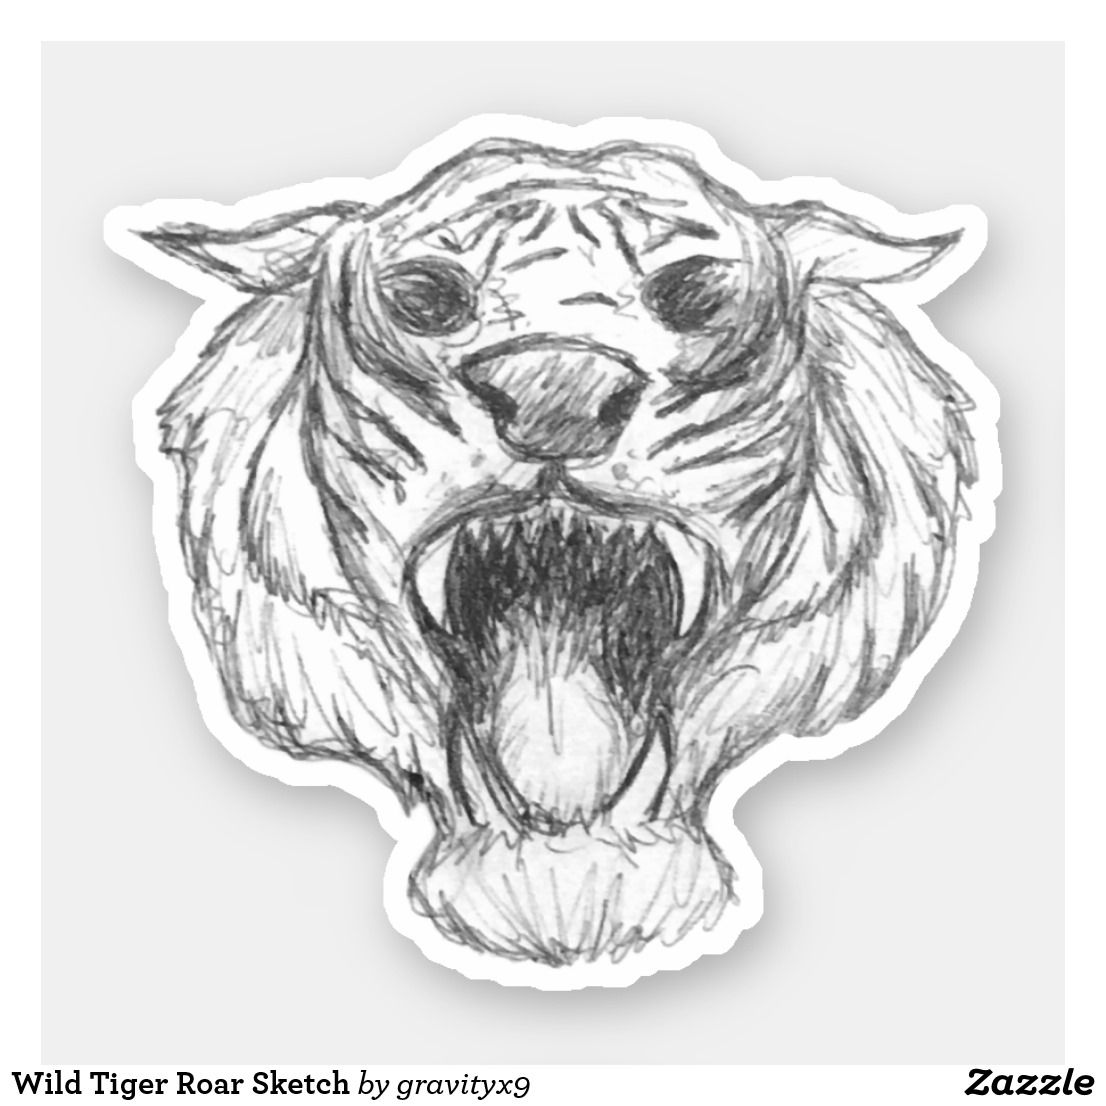 Wild Tiger Roar Sketch Sticker |  * Wild Tiger Roar Sketch Sticker  by at * Cutout stickers are available in several size options.* Choose size and use for DIY projects, projects and scrap booking ideas, too! * contour stickers * stickers laptop ideas * cut out stickers * stickers for school * stickers for crafting * stickers for kids *